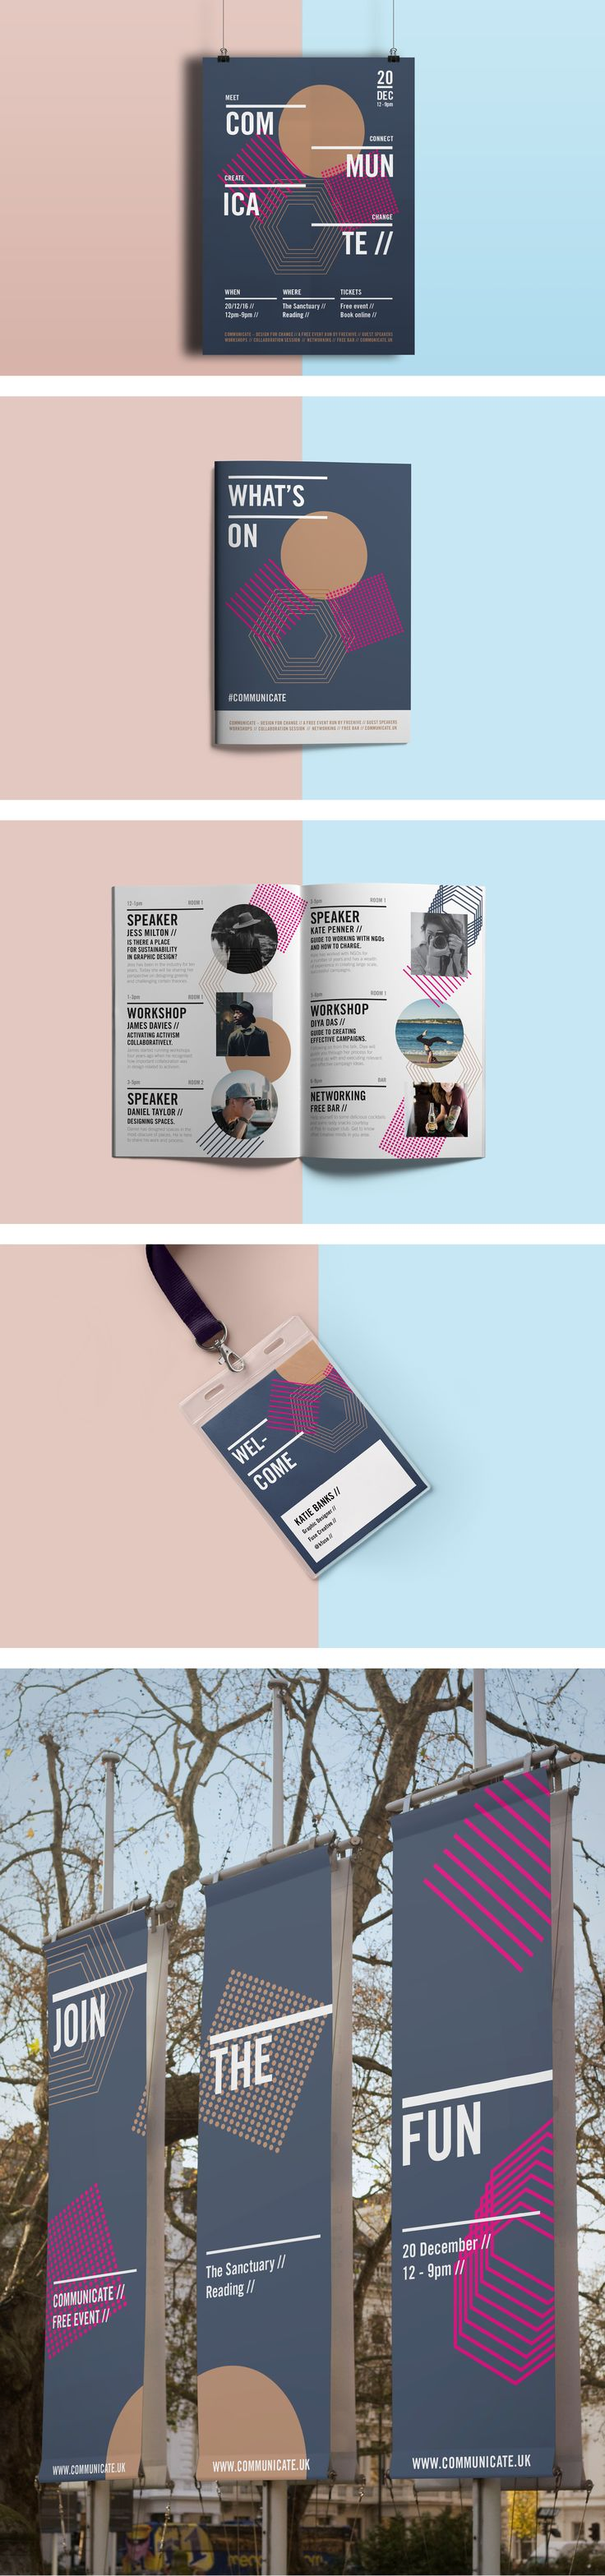 Communicate, Event Branding. Poster, programme, brochure, Lanyard, ID card, outdoor banners, typography.